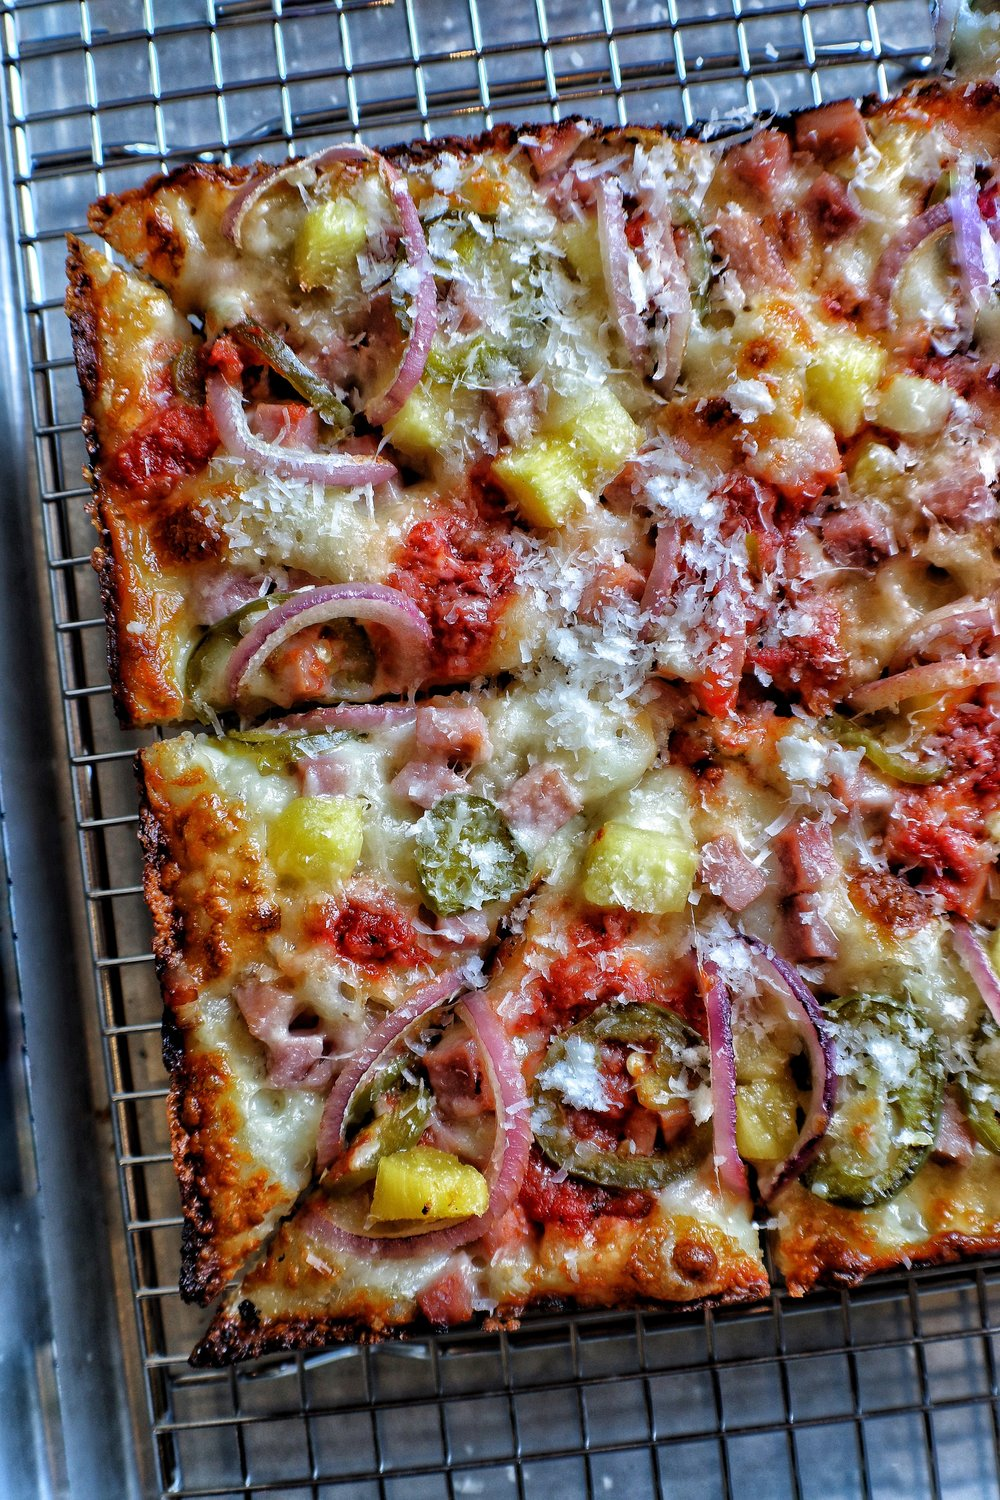 PAN PIZZA   Fleishers Smoked Ham, Pineapple, Jalapeno, Red Onion